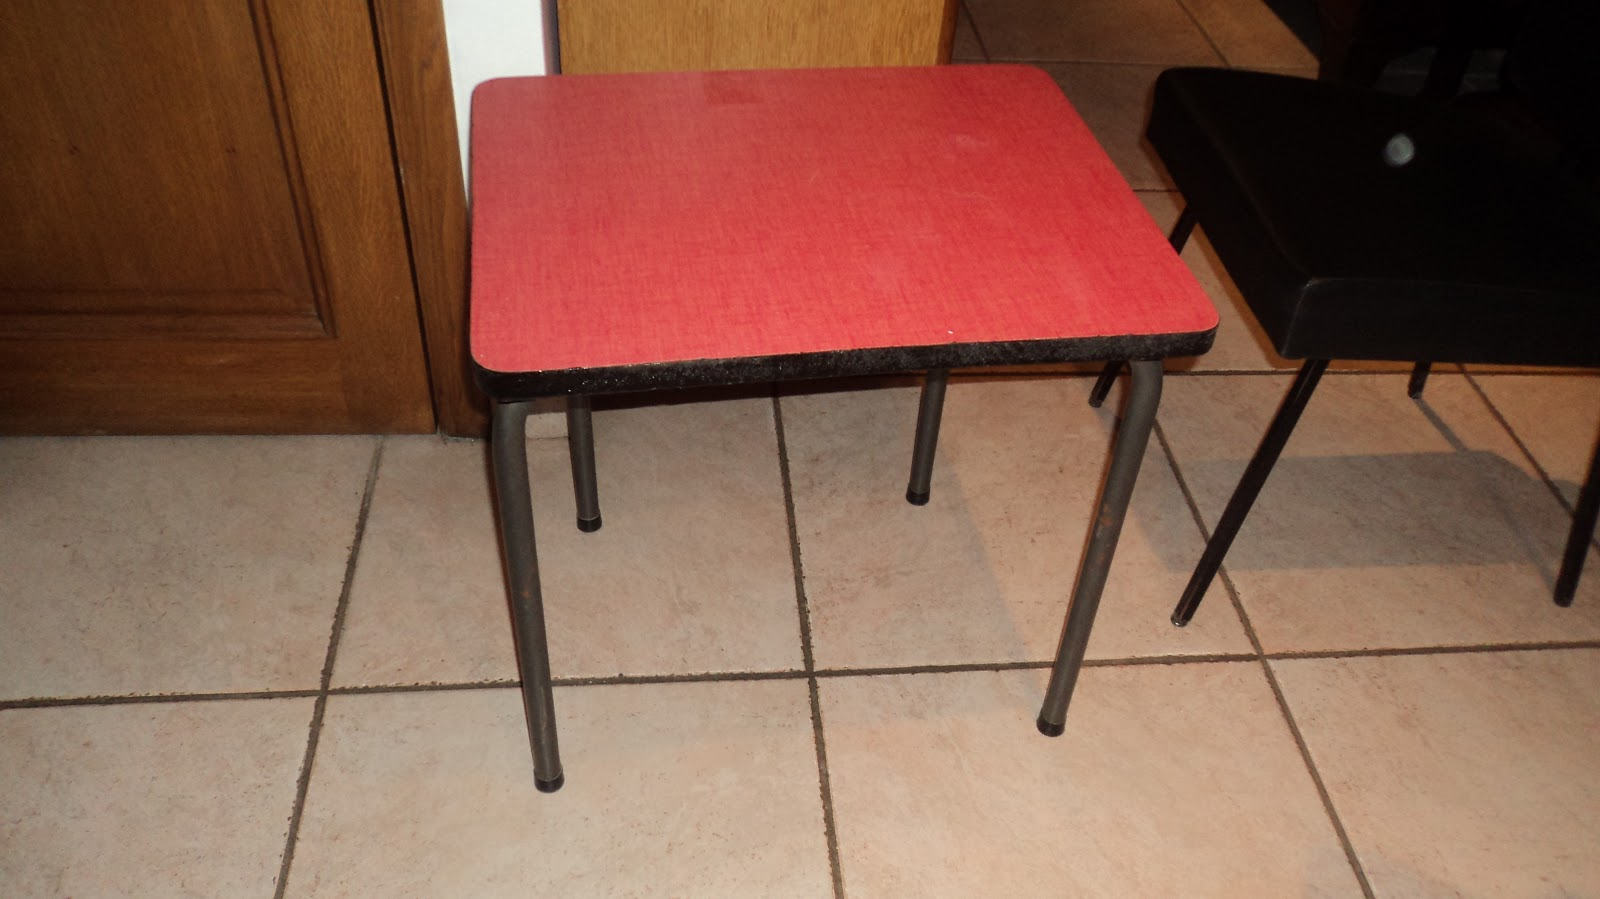 lucie la chineuse petite table en formica rouge. Black Bedroom Furniture Sets. Home Design Ideas